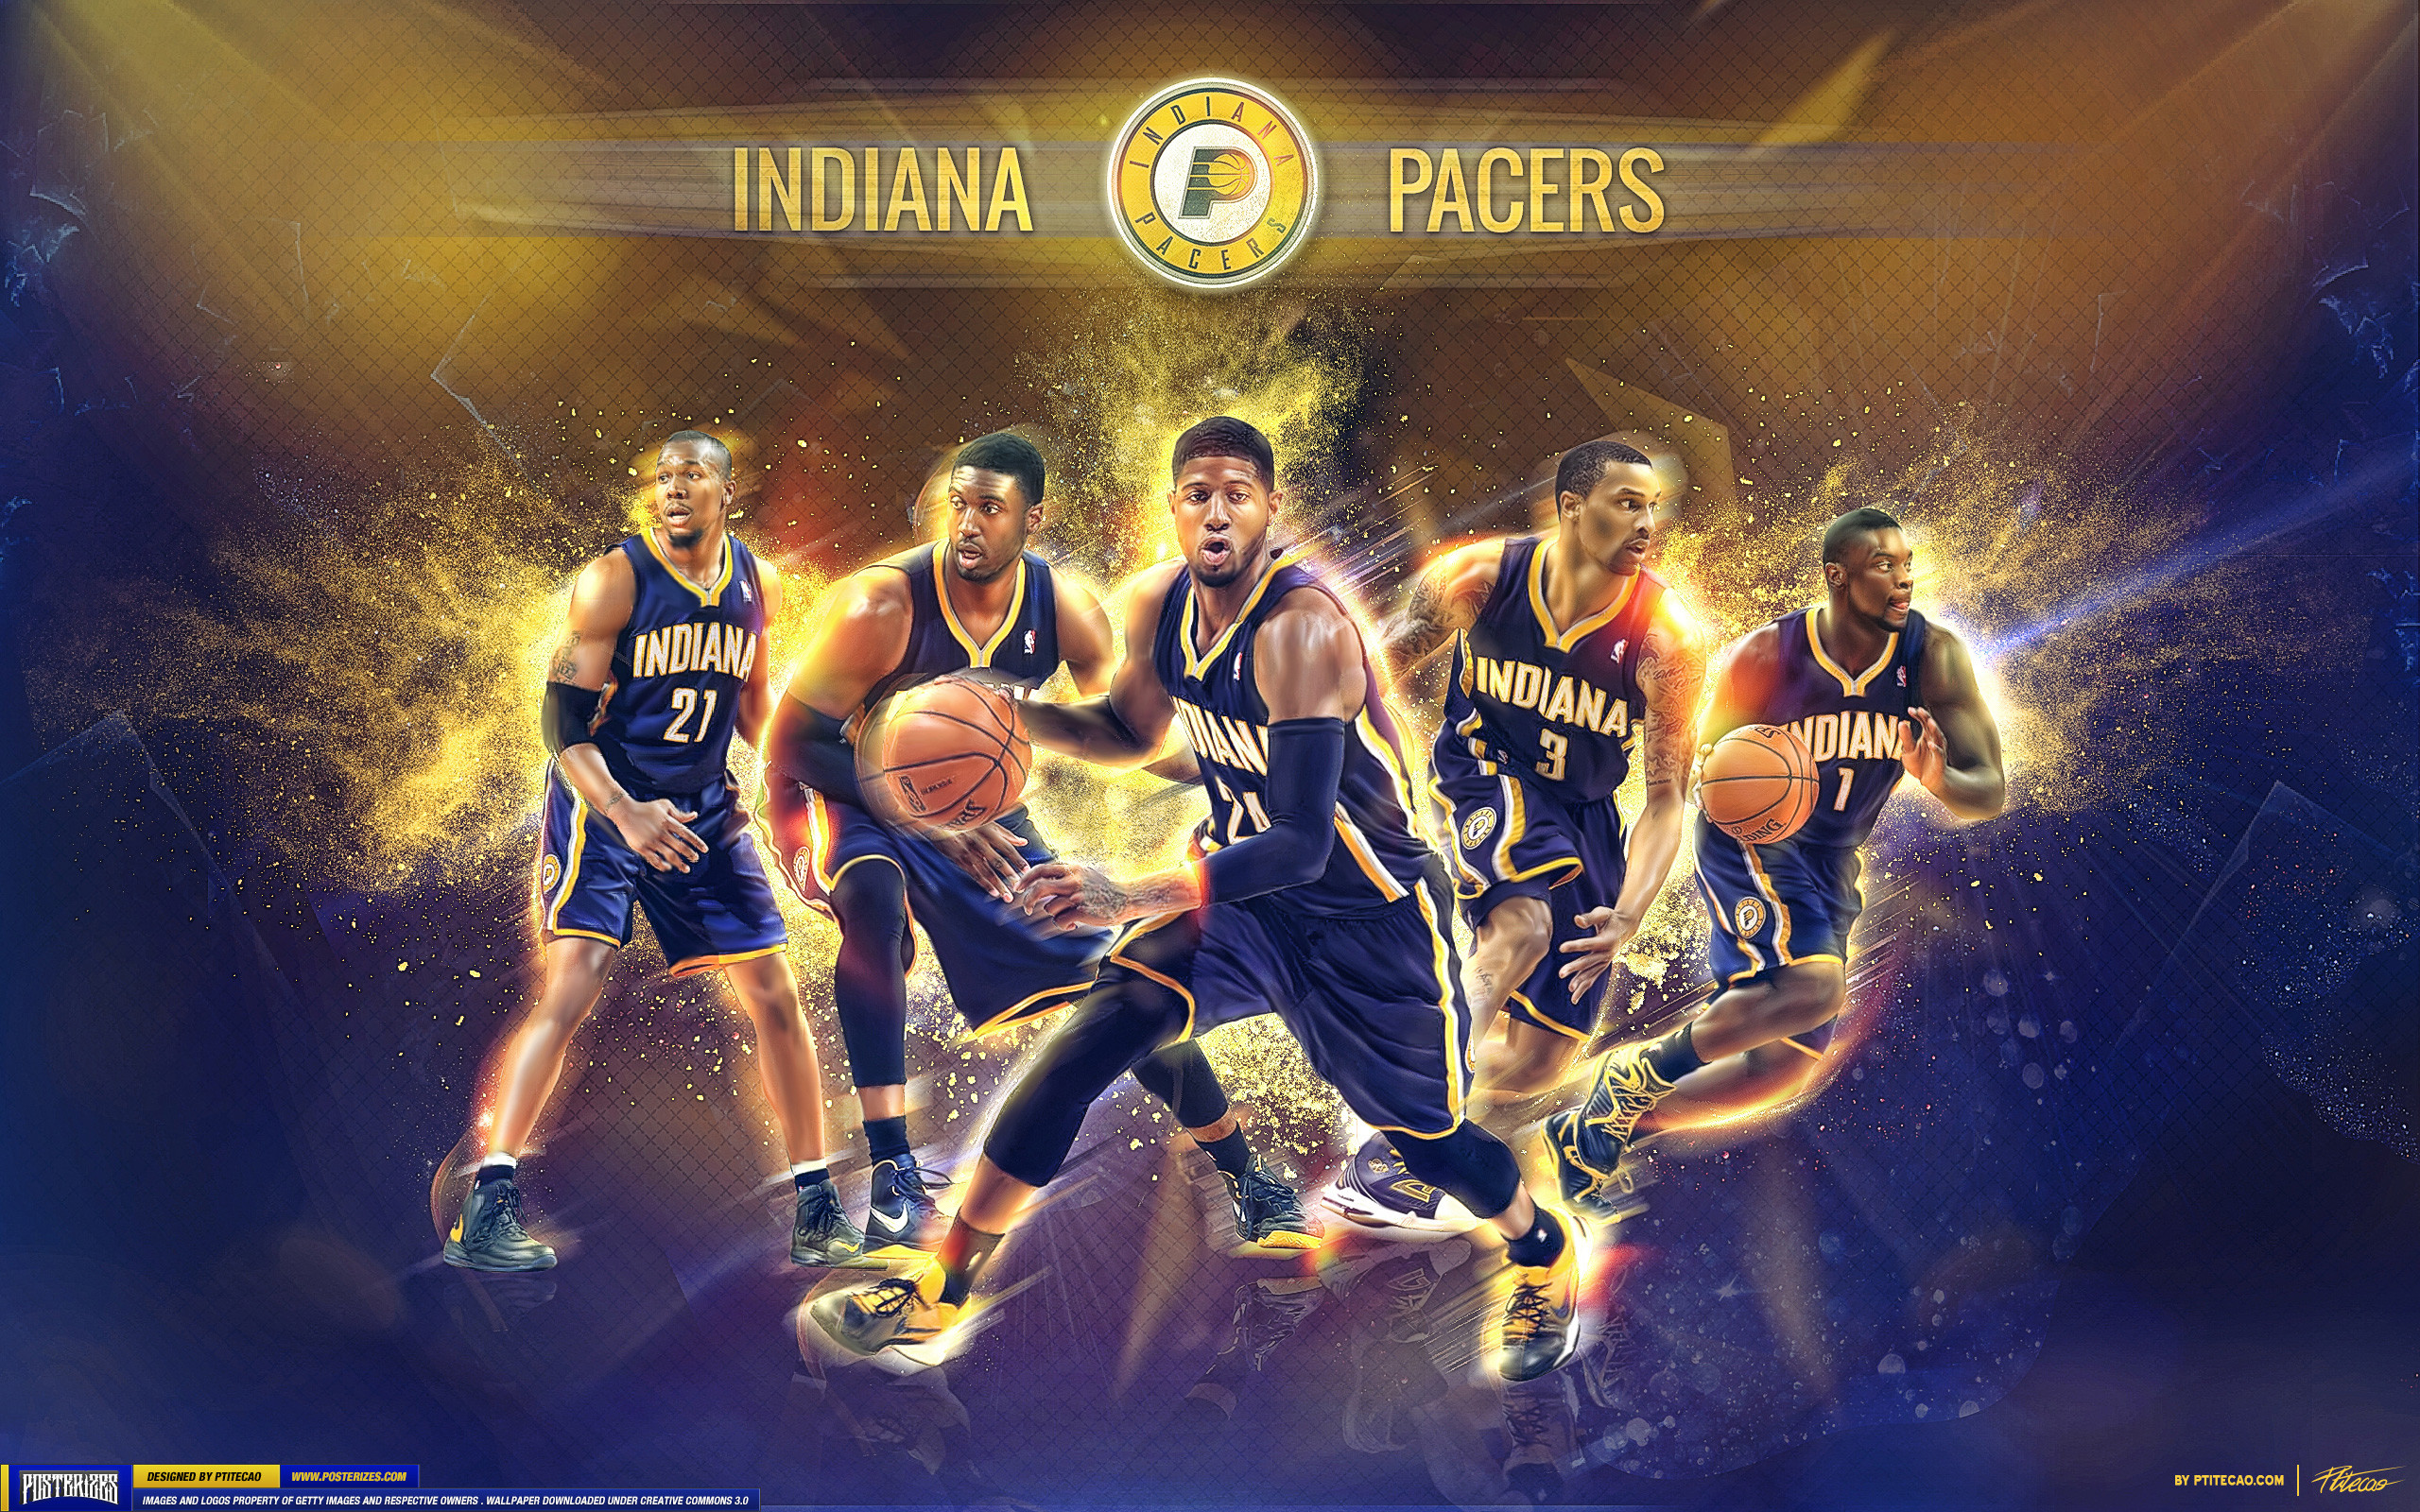 Indiana Pacers Wallpapers 183 ① Wallpapertag